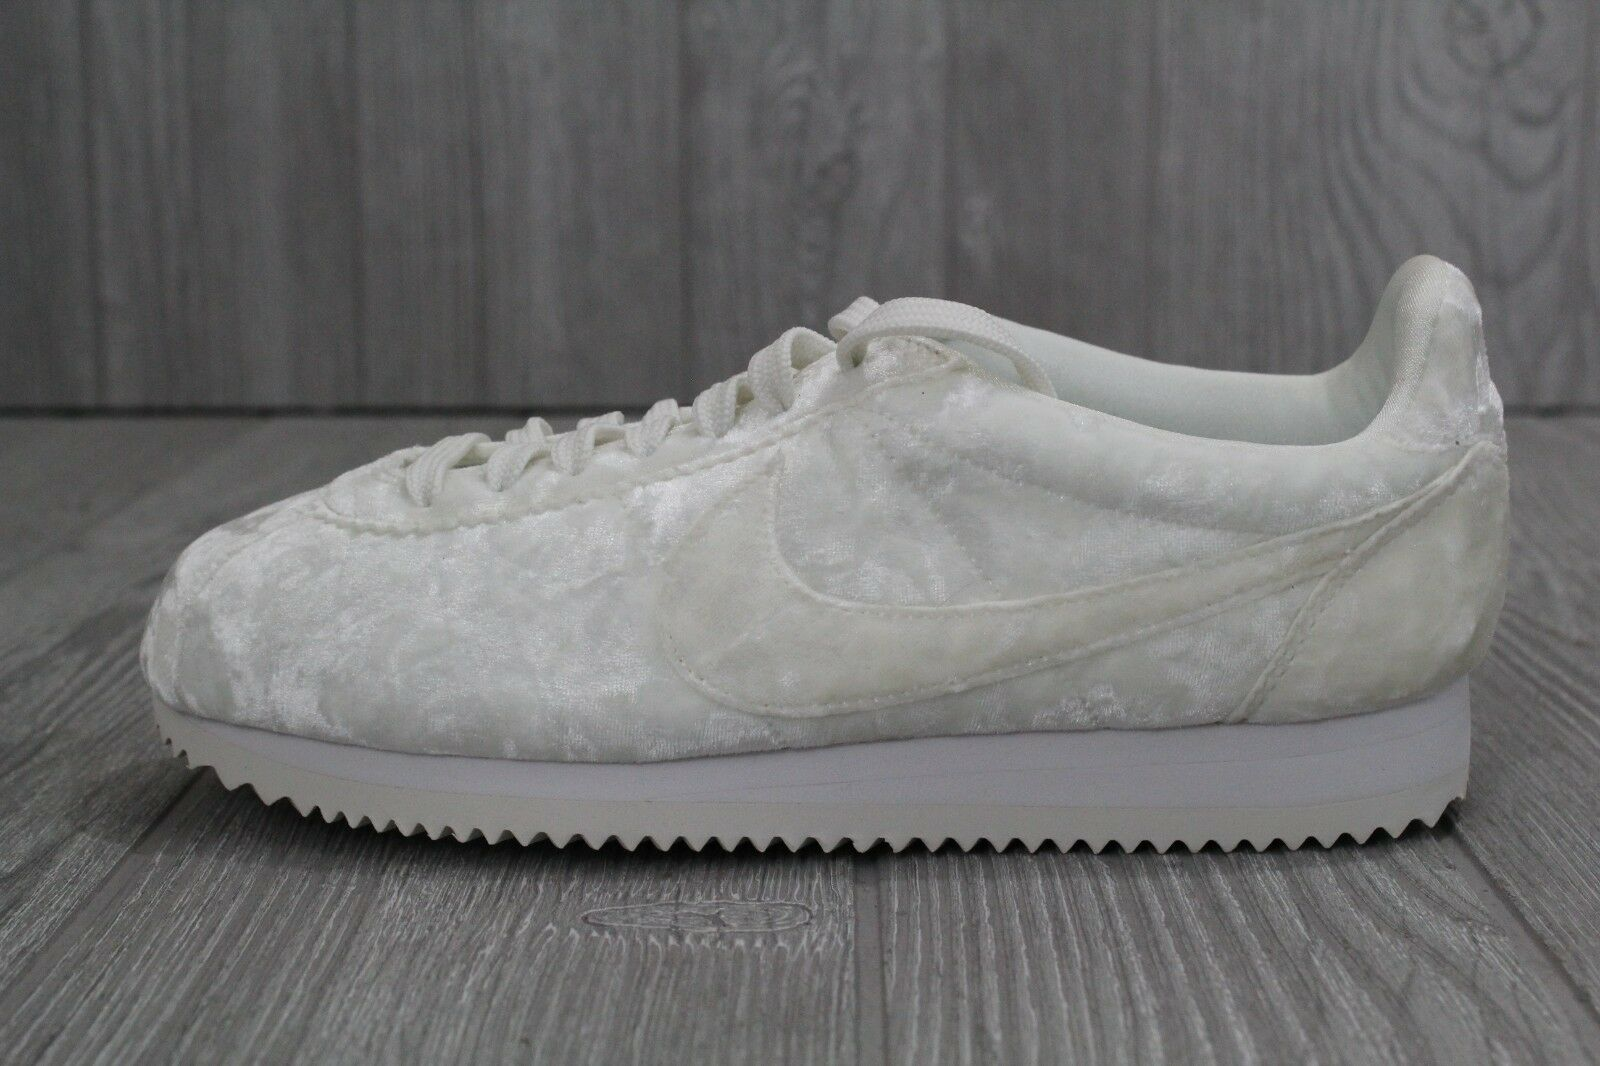 29 New Nike Womens Cortez Classic LX White Crushed Velvet shoes AA3255-100 6.5 9